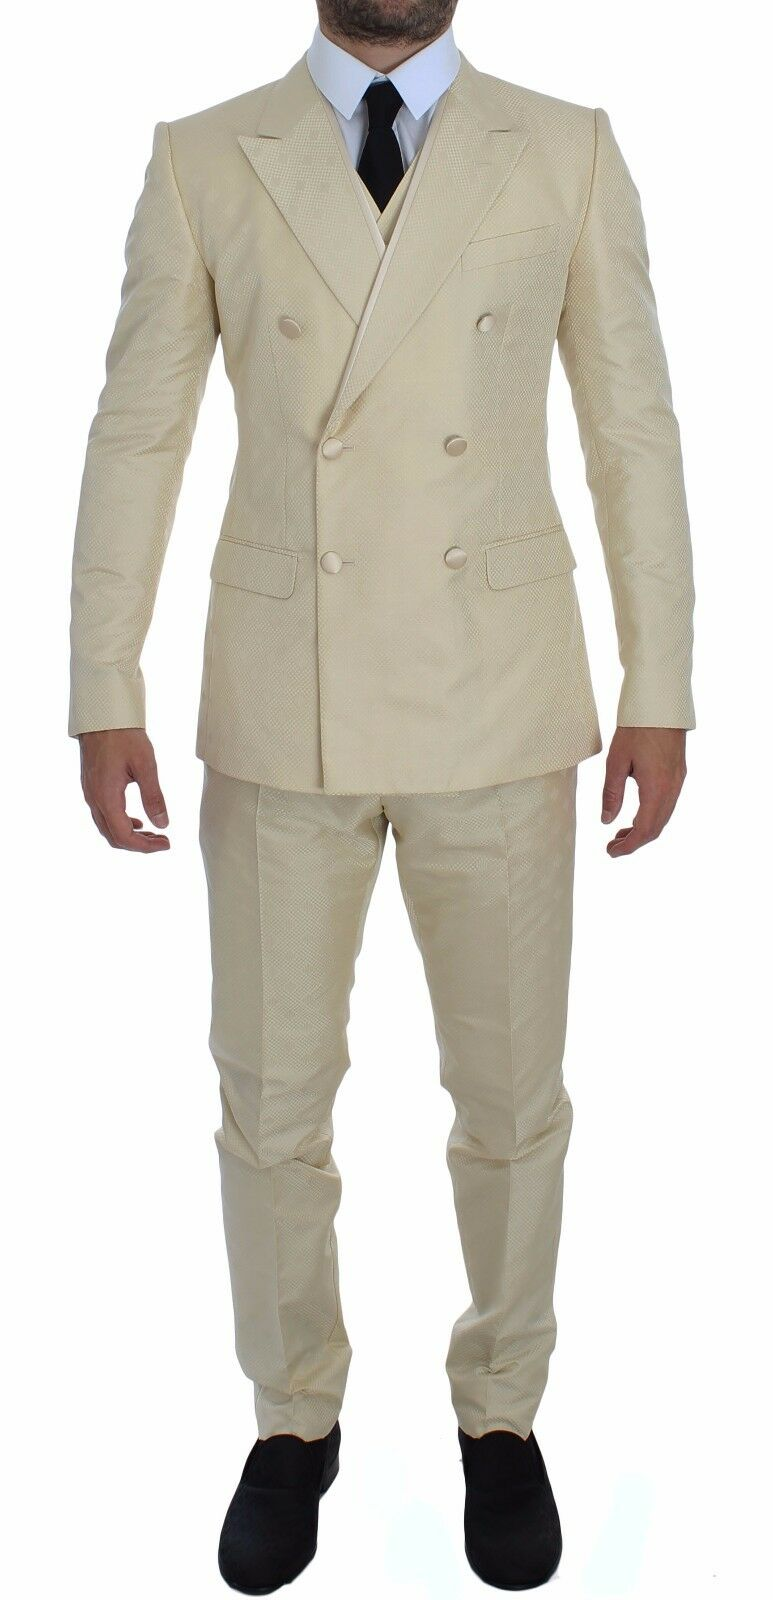 NWT 3200 DOLCE & GABBANA Cream Weiß Double Breasted 3 Piece Suit EU54/US44/XXL